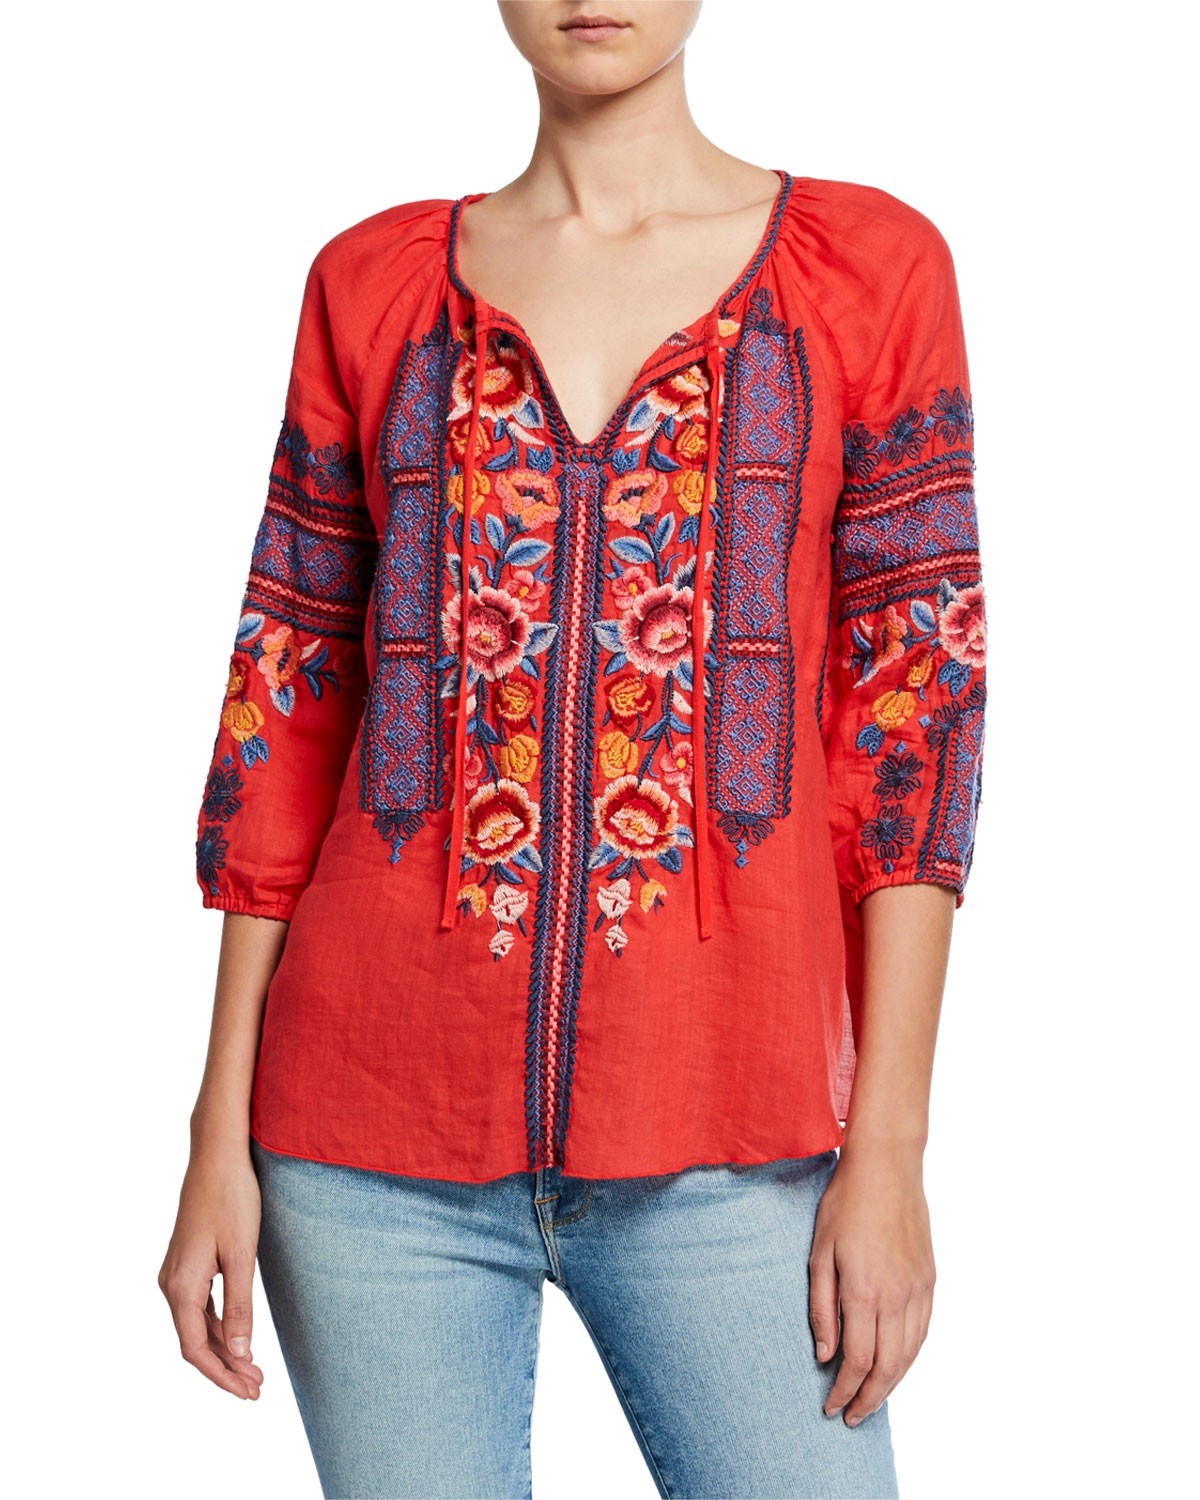 Johnny Was Tops PLUS SIZE DANI EMBROIDERED SPLIT-NECK 3/4-SLEEVE LINEN PEASANT BLOUSE